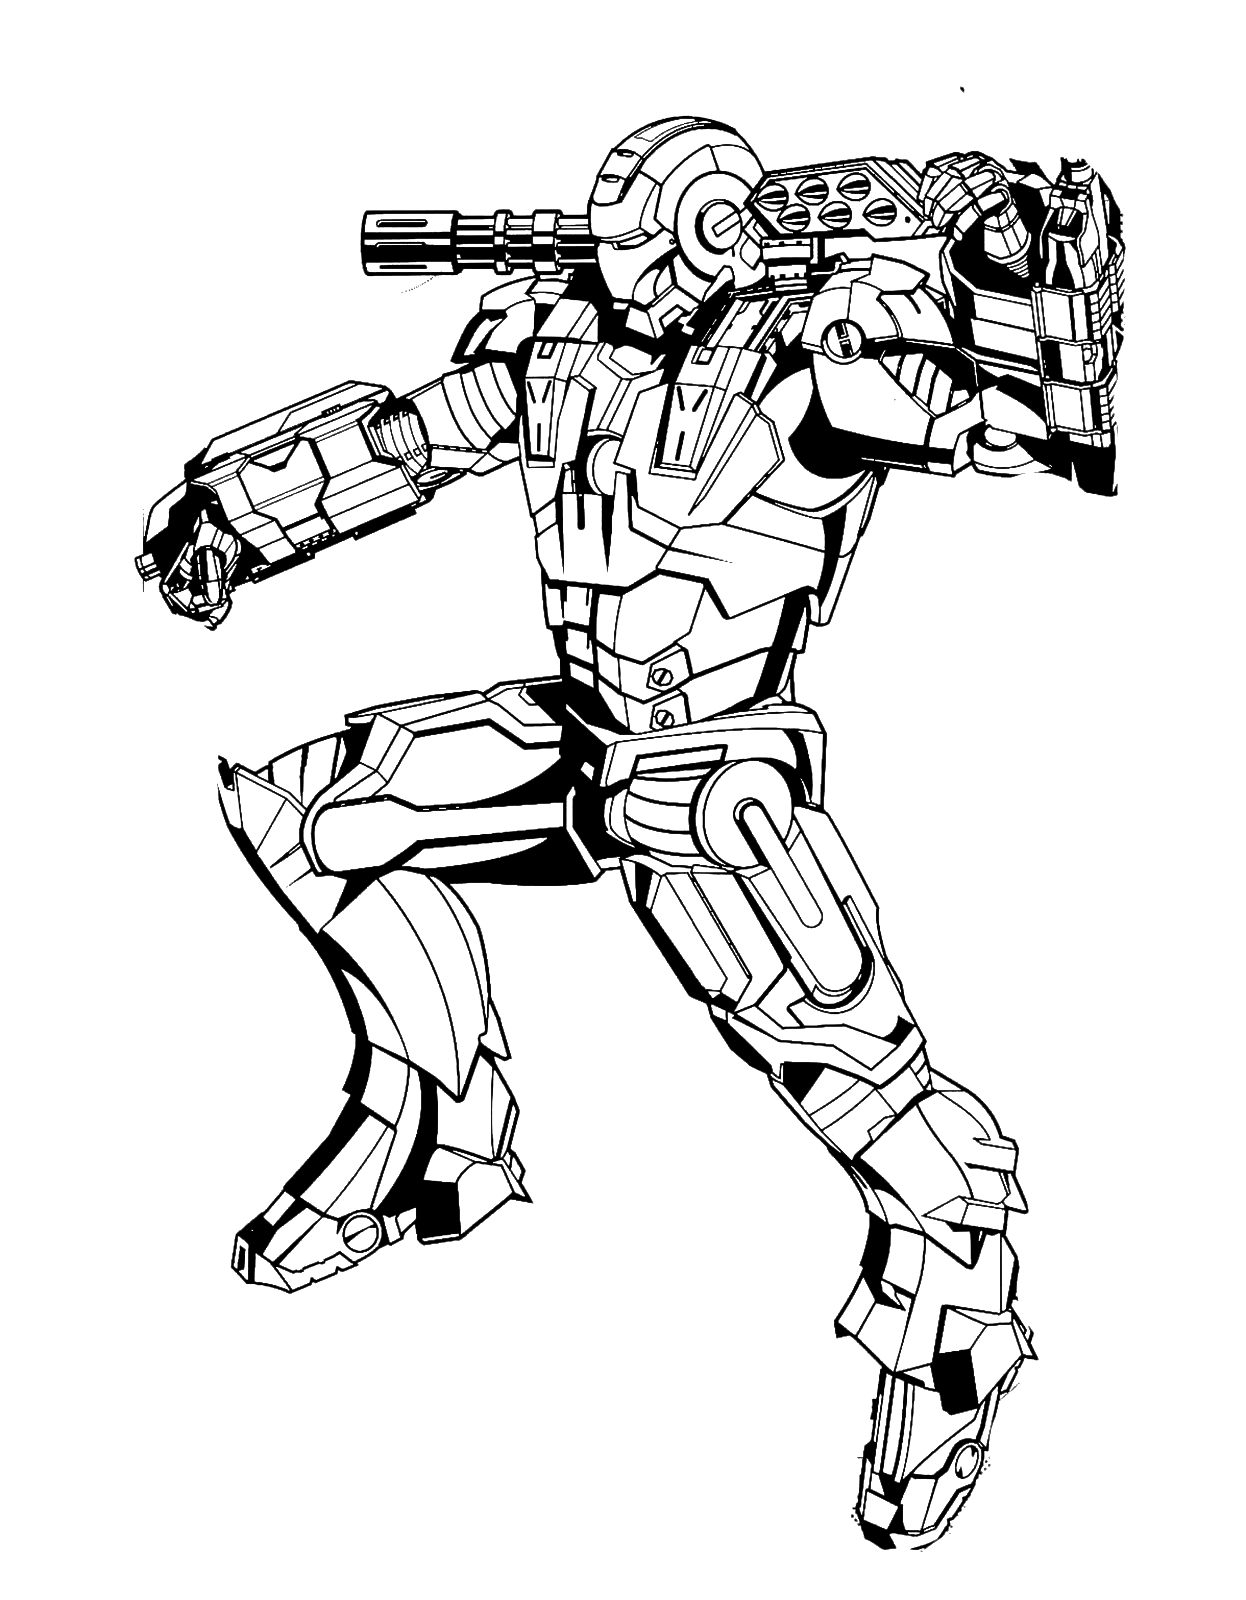 The Iron Man Armor Enhanced With Machine Gun And Missiles